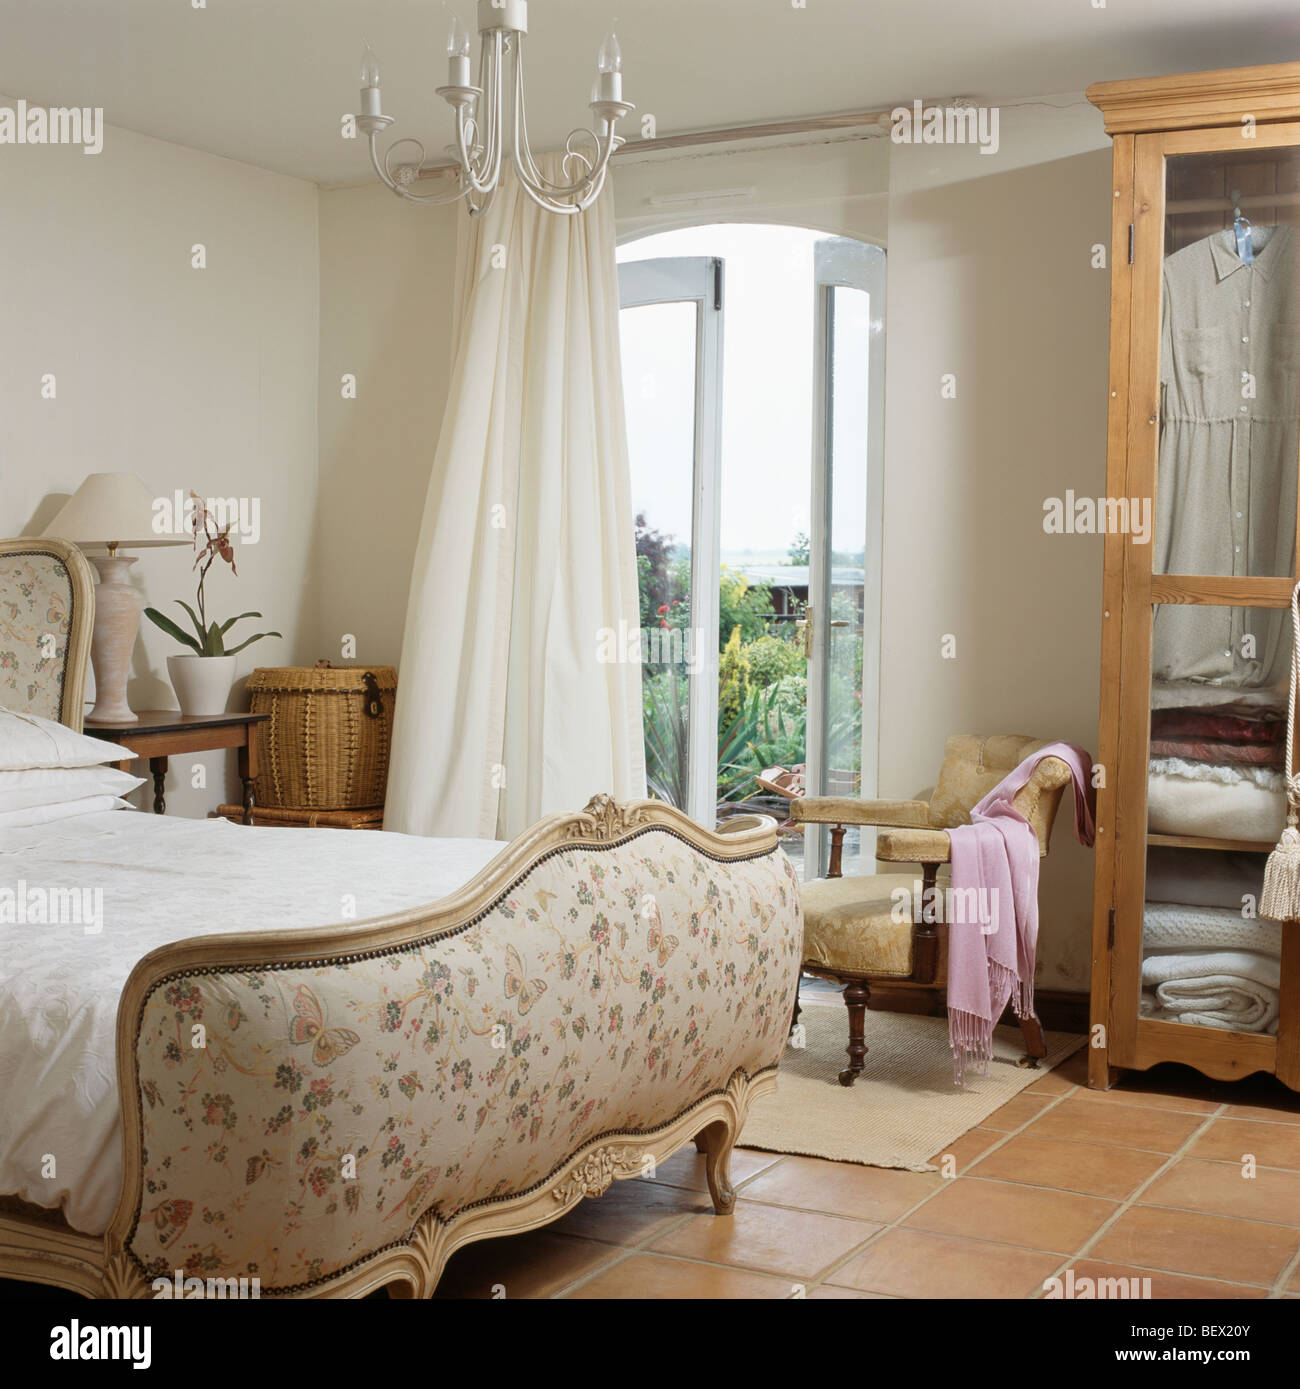 Stock Photo   Upholstered French bed in cream country bedroom with cream  curtains at French windows with view of the garden. Upholstered French bed in cream country bedroom with cream